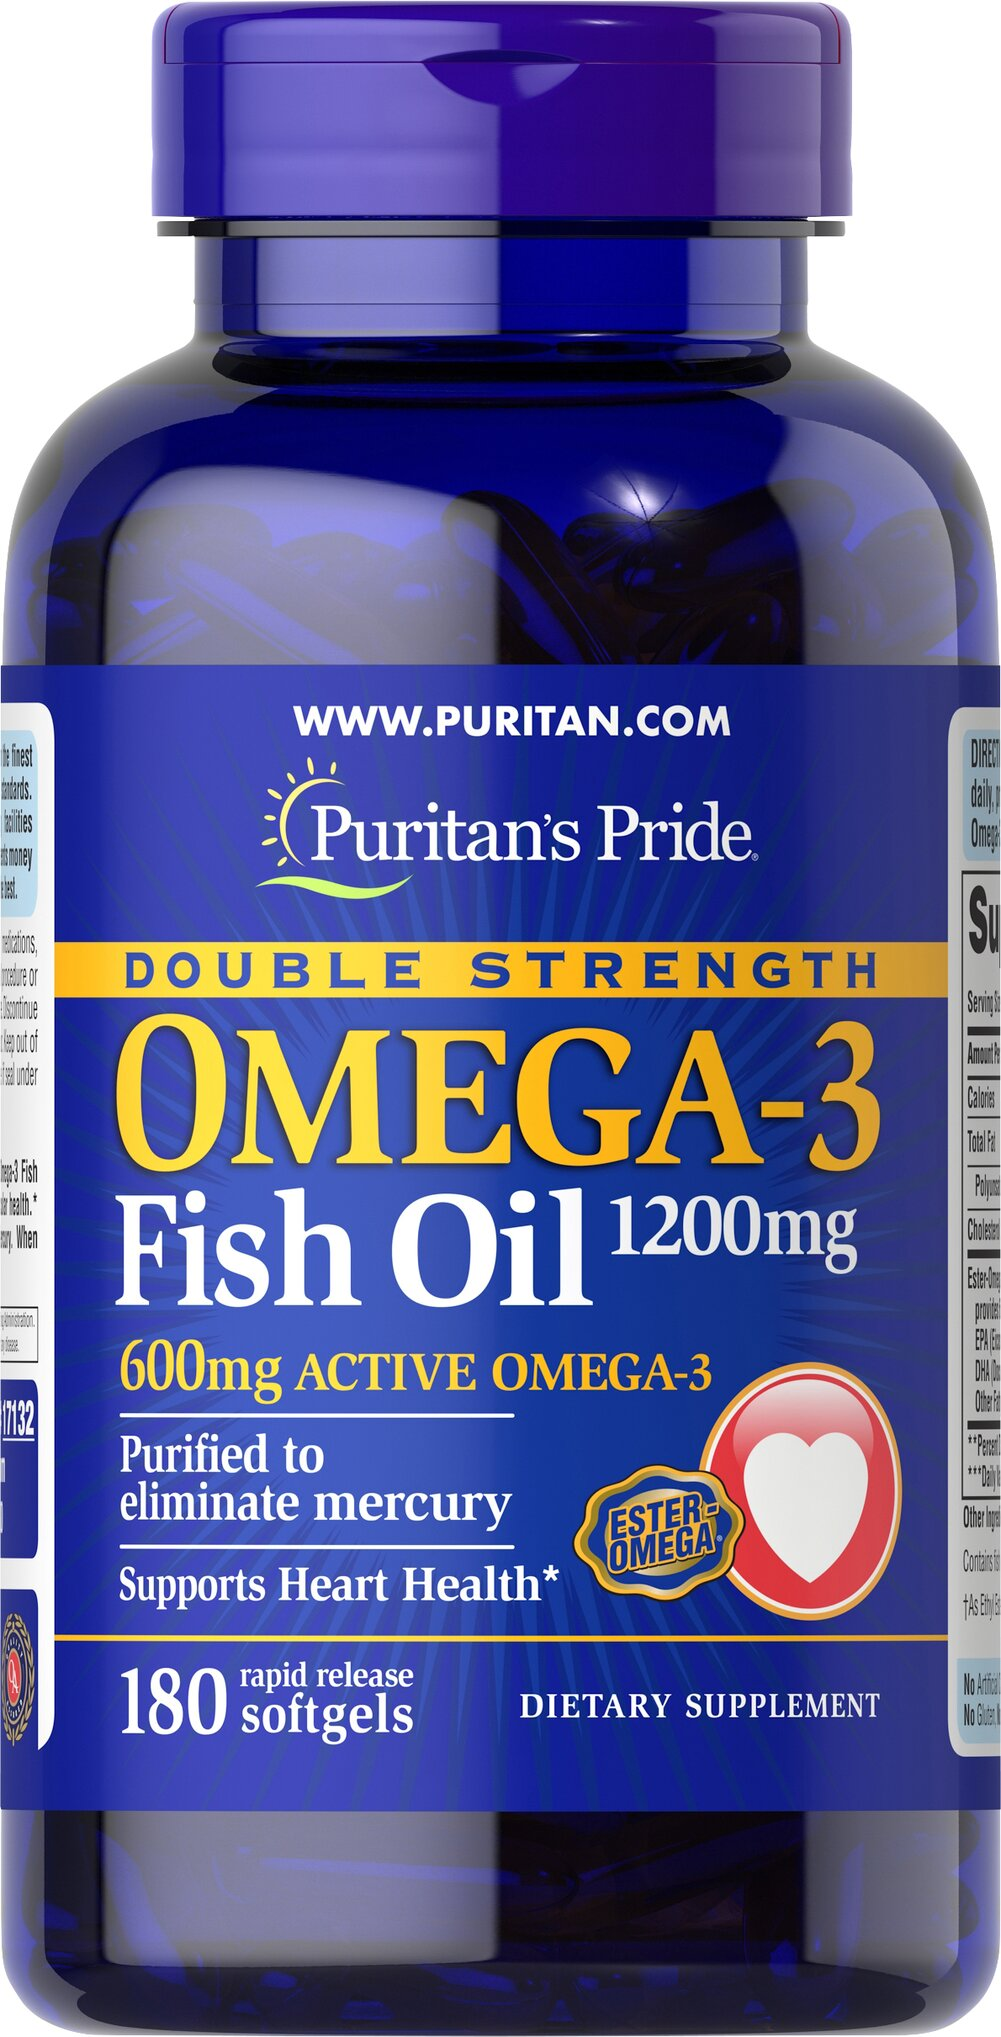 Double Strength Omega-3 Fish Oil 1200 mg <p><span></span>Provides 768 mg of Active Omega-3.</p><p><span></span>Omega-3 fatty acids are important for heart health.**</p><p><span></span>Purified to eliminate mercury.</p><p>Each double strength Omega-3 fish oil softgel contains 1200mg of Ester-Omega® Fish Oil. This provides 768 mg of Total Omega-3 Fatty Acids comprising of DHA, EPA and other fatty acids. Supportive b